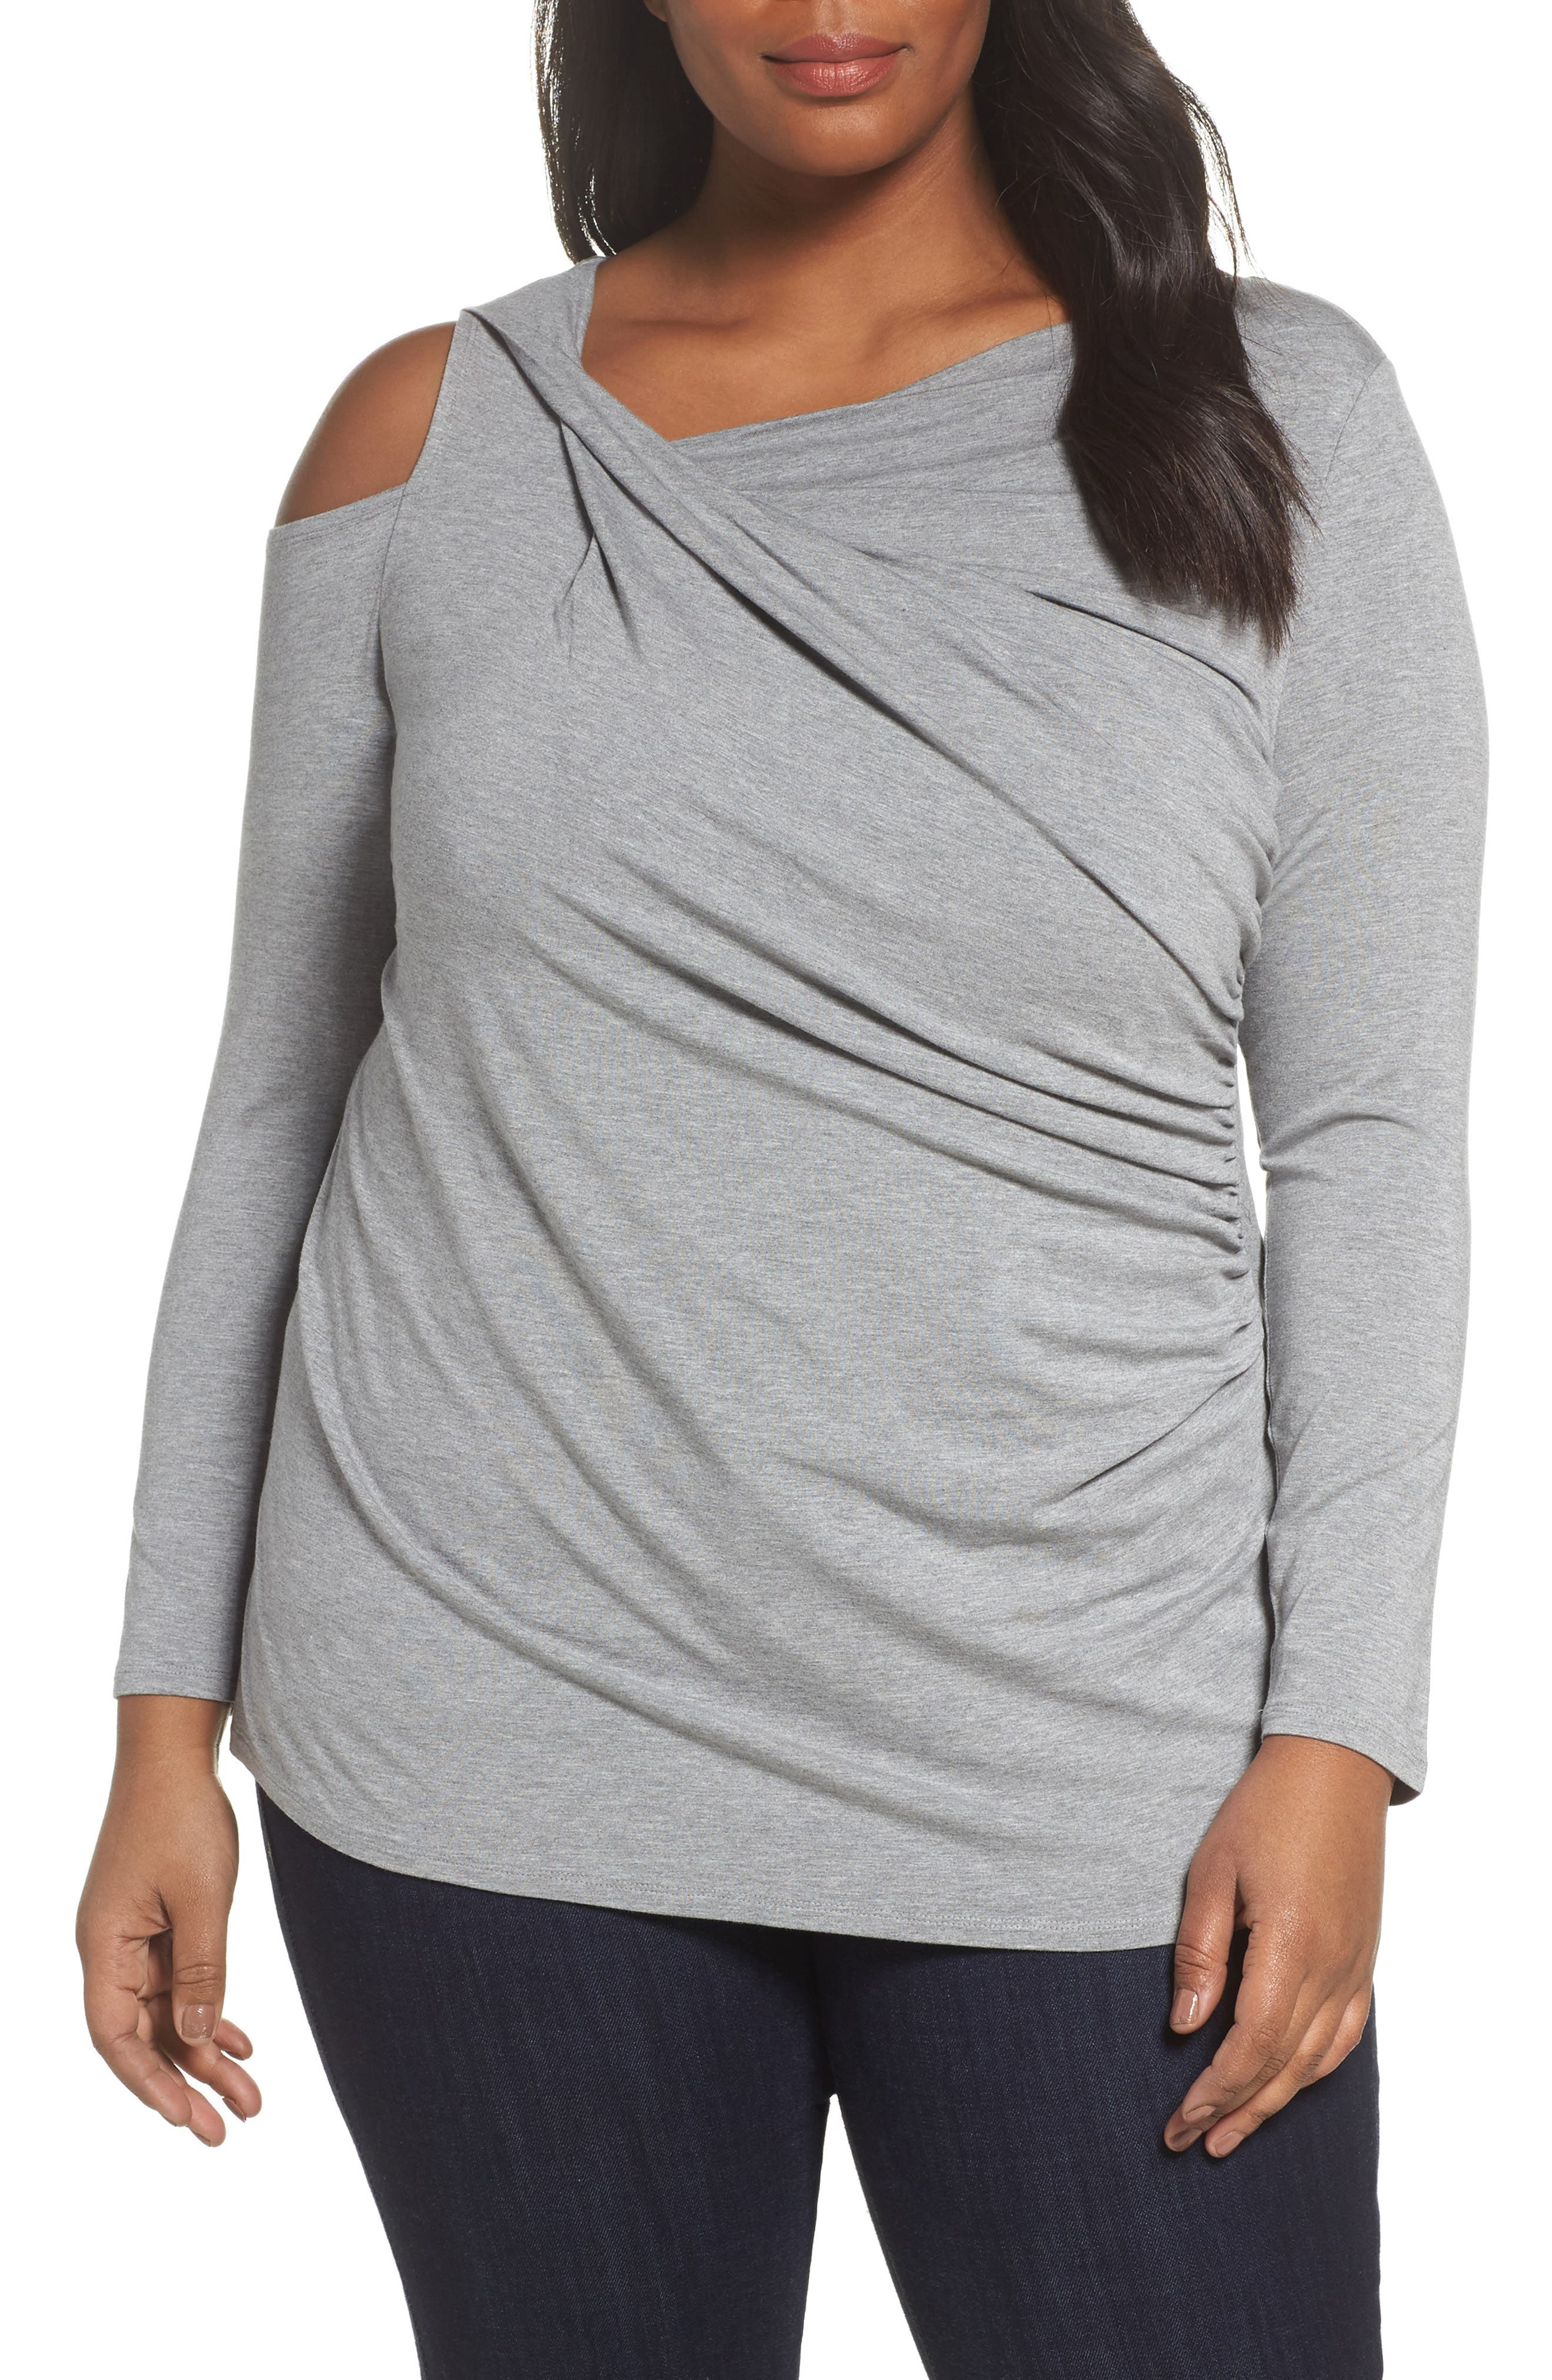 Alternate Image 1 Selected - Vince Camuto Twisted Cold Shoulder Top (Plus Size)